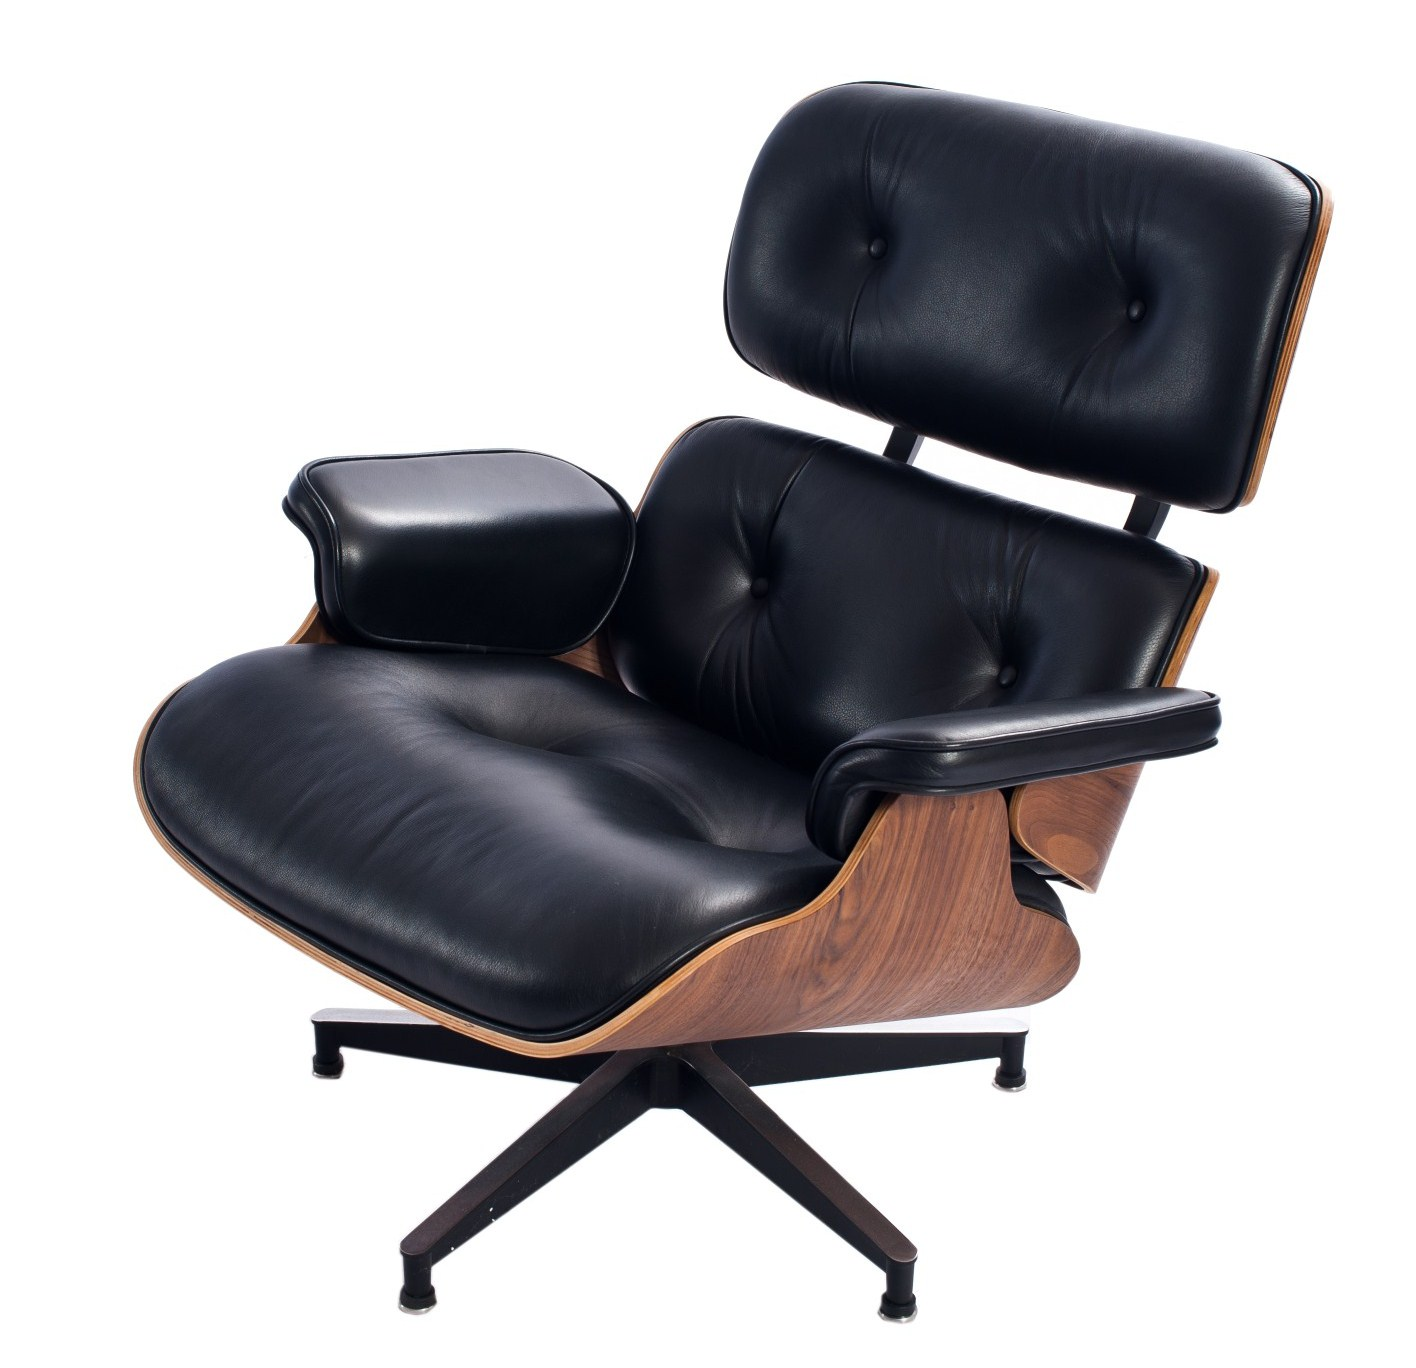 Charles Eames Lounger